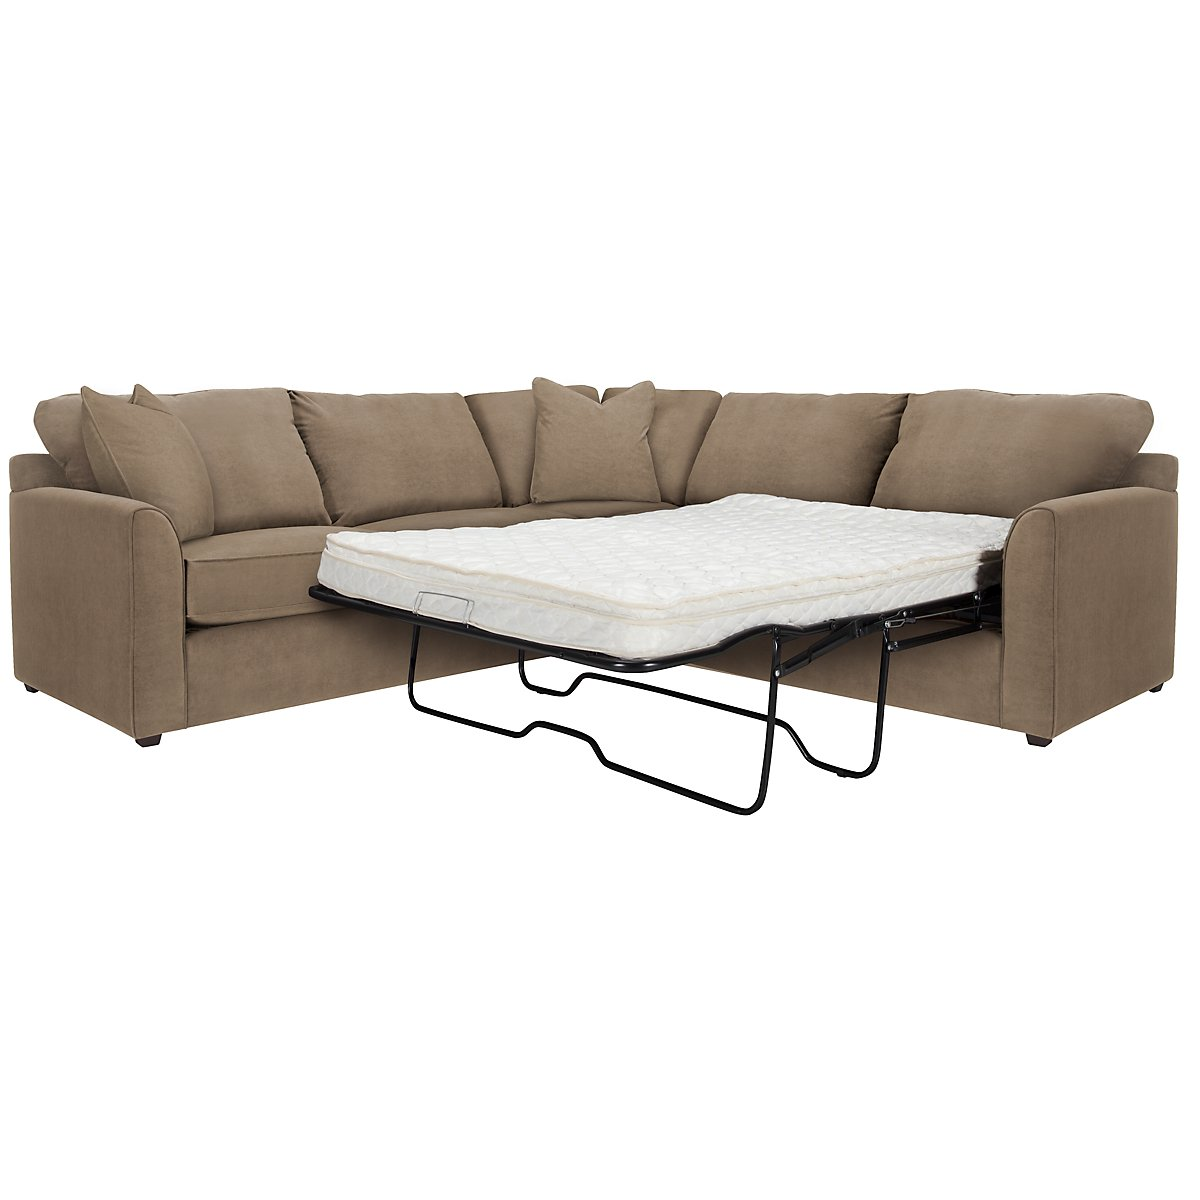 Express3 Light Brown Microfiber Two-Arm Left Innerspring Sleeper Sectional